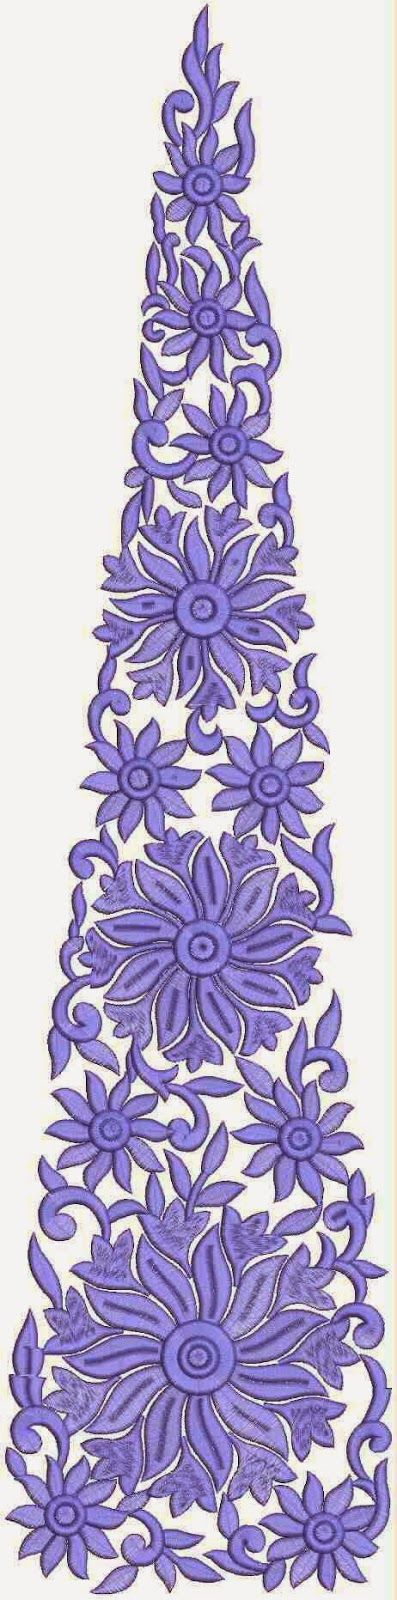 72 Best Machine Embroidery Designs Images On Pinterest Embroidery